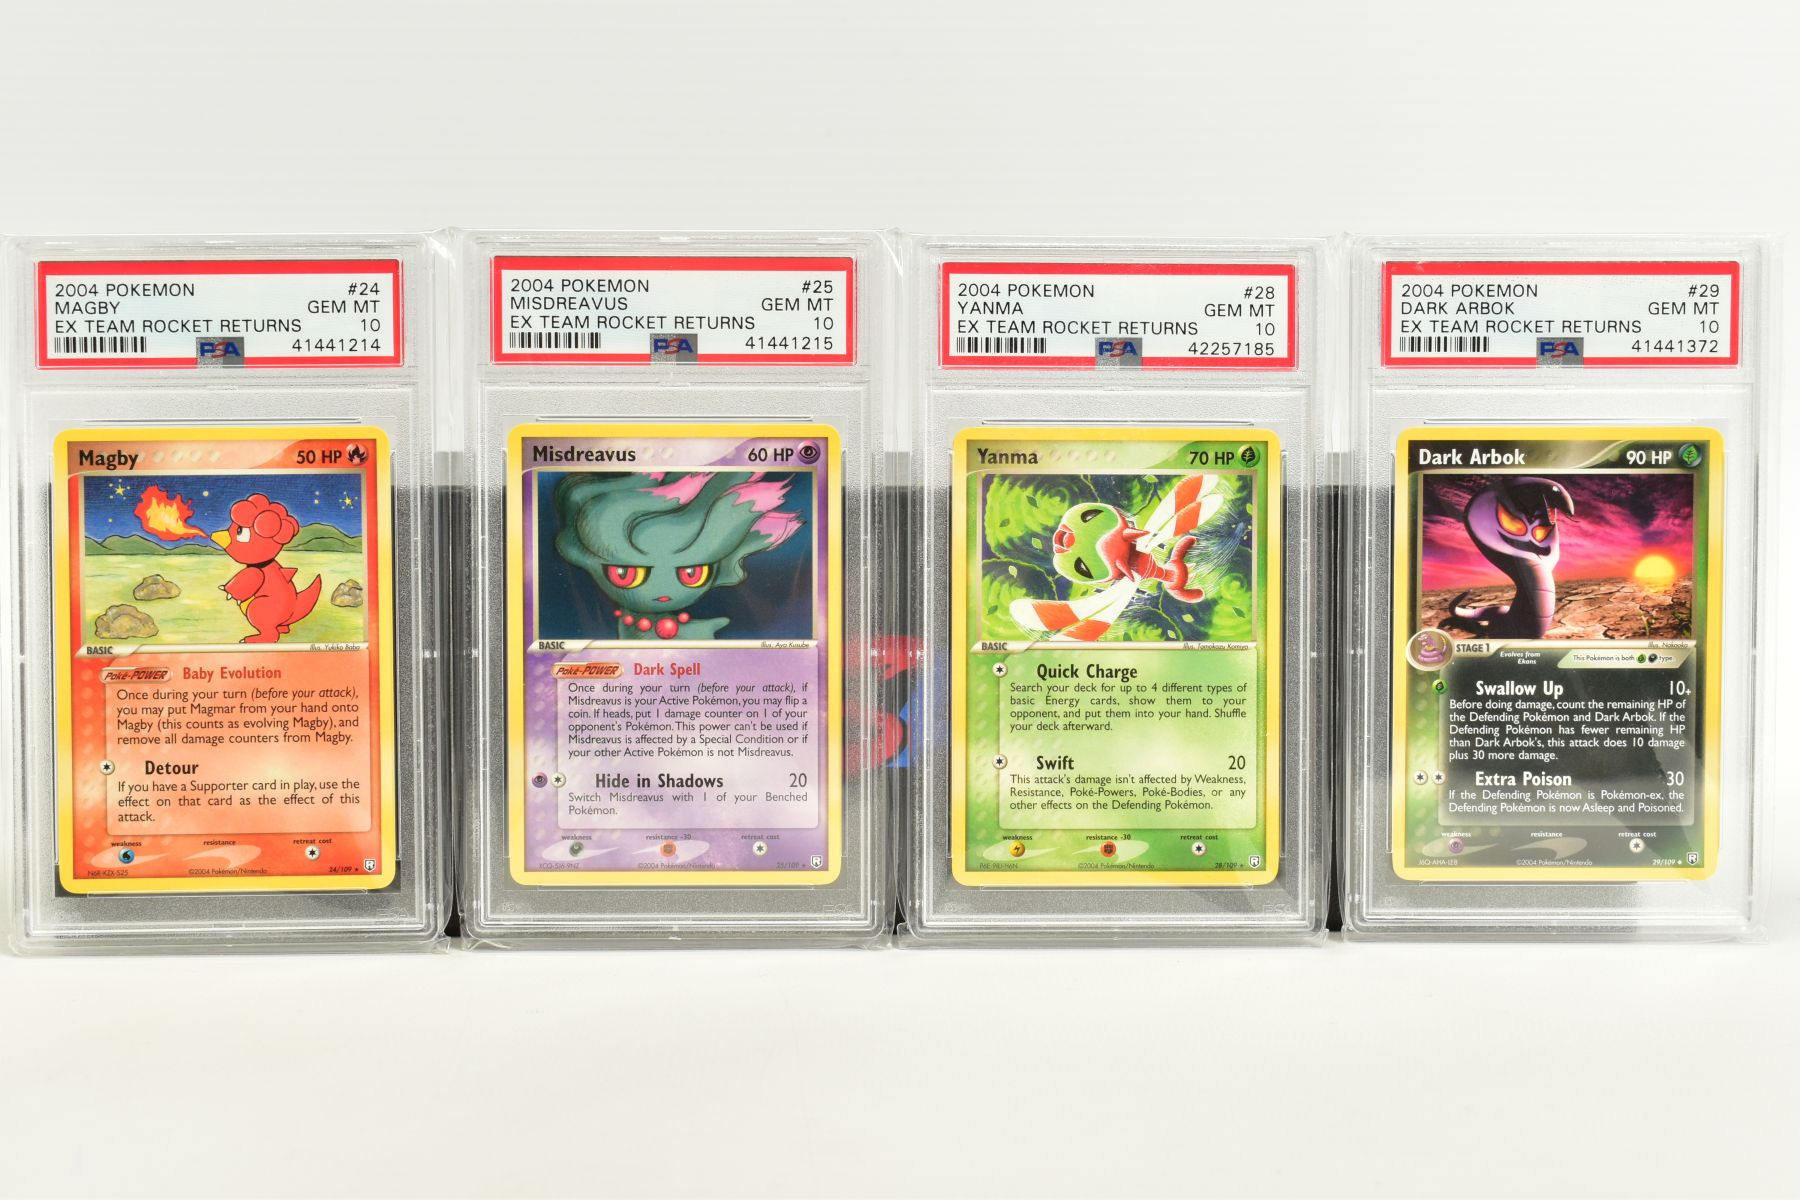 A QUANTITY OF PSA GRADED POKEMON EX TEAM ROCKET RETURNS AND EX RUBY & SAPPHIRE SET CARDS, all are - Image 4 of 15